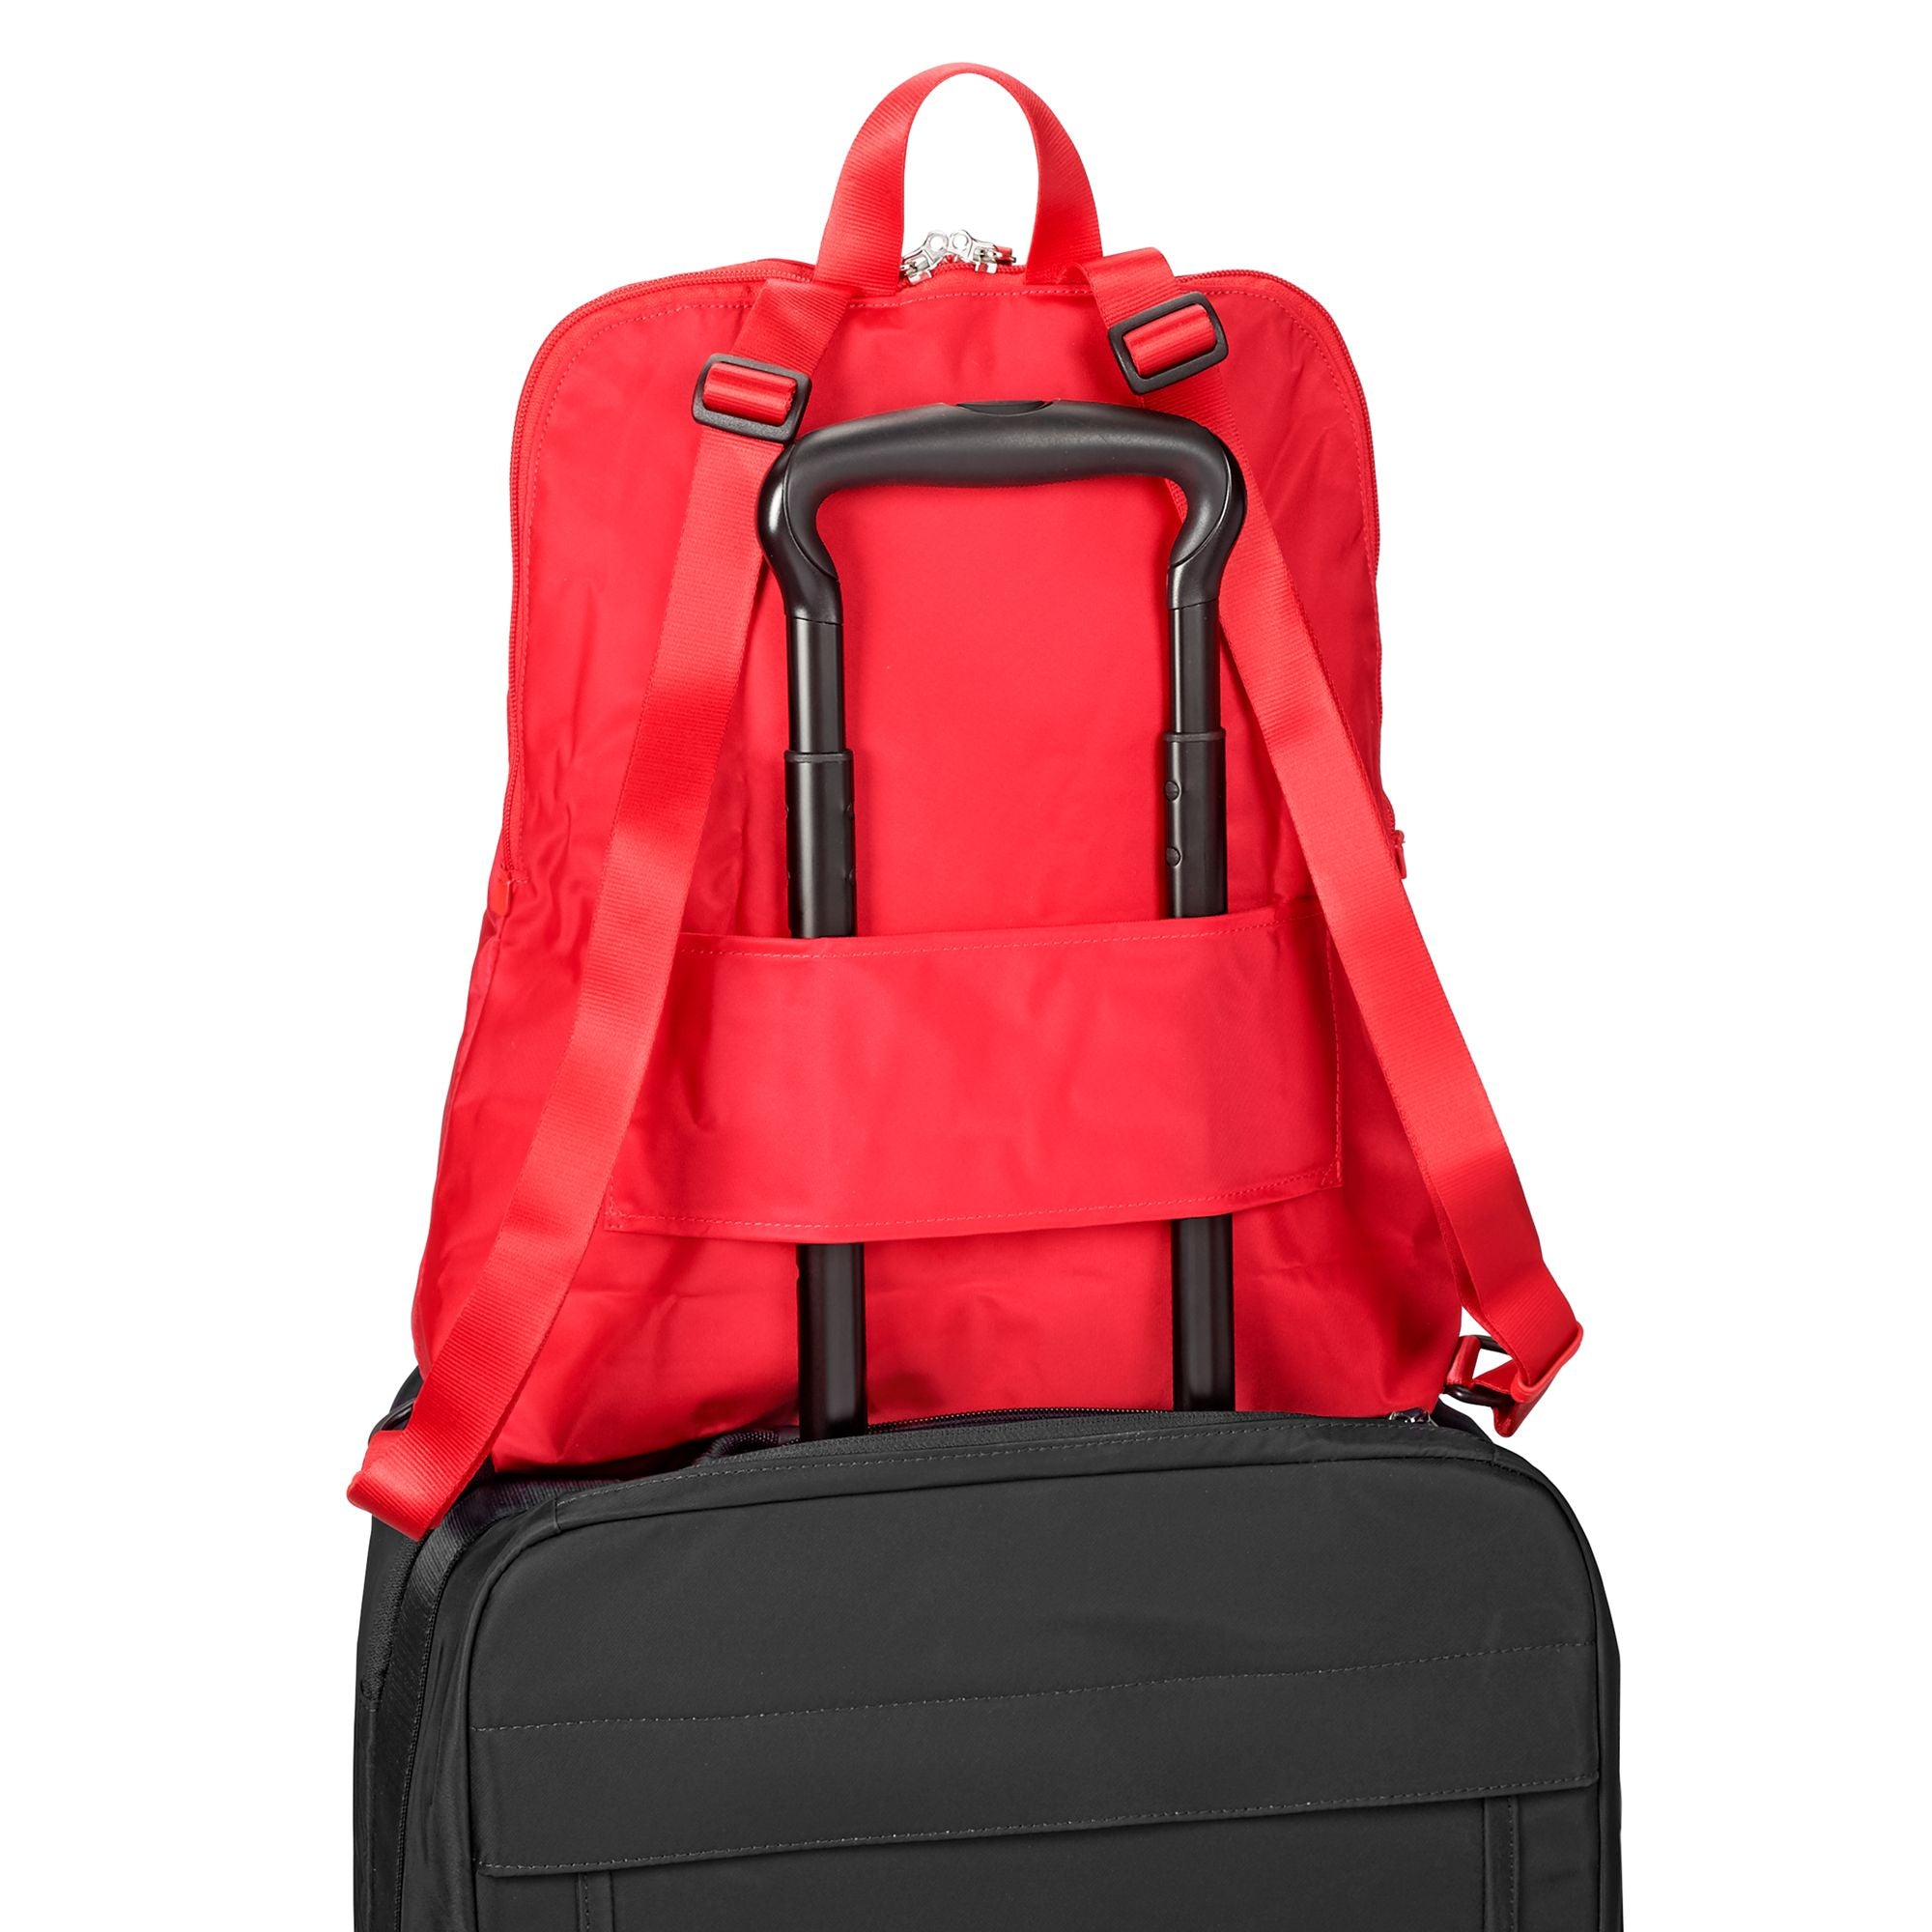 Tumi Voyageur Just In Case Backpack - Hot pink | MEGO